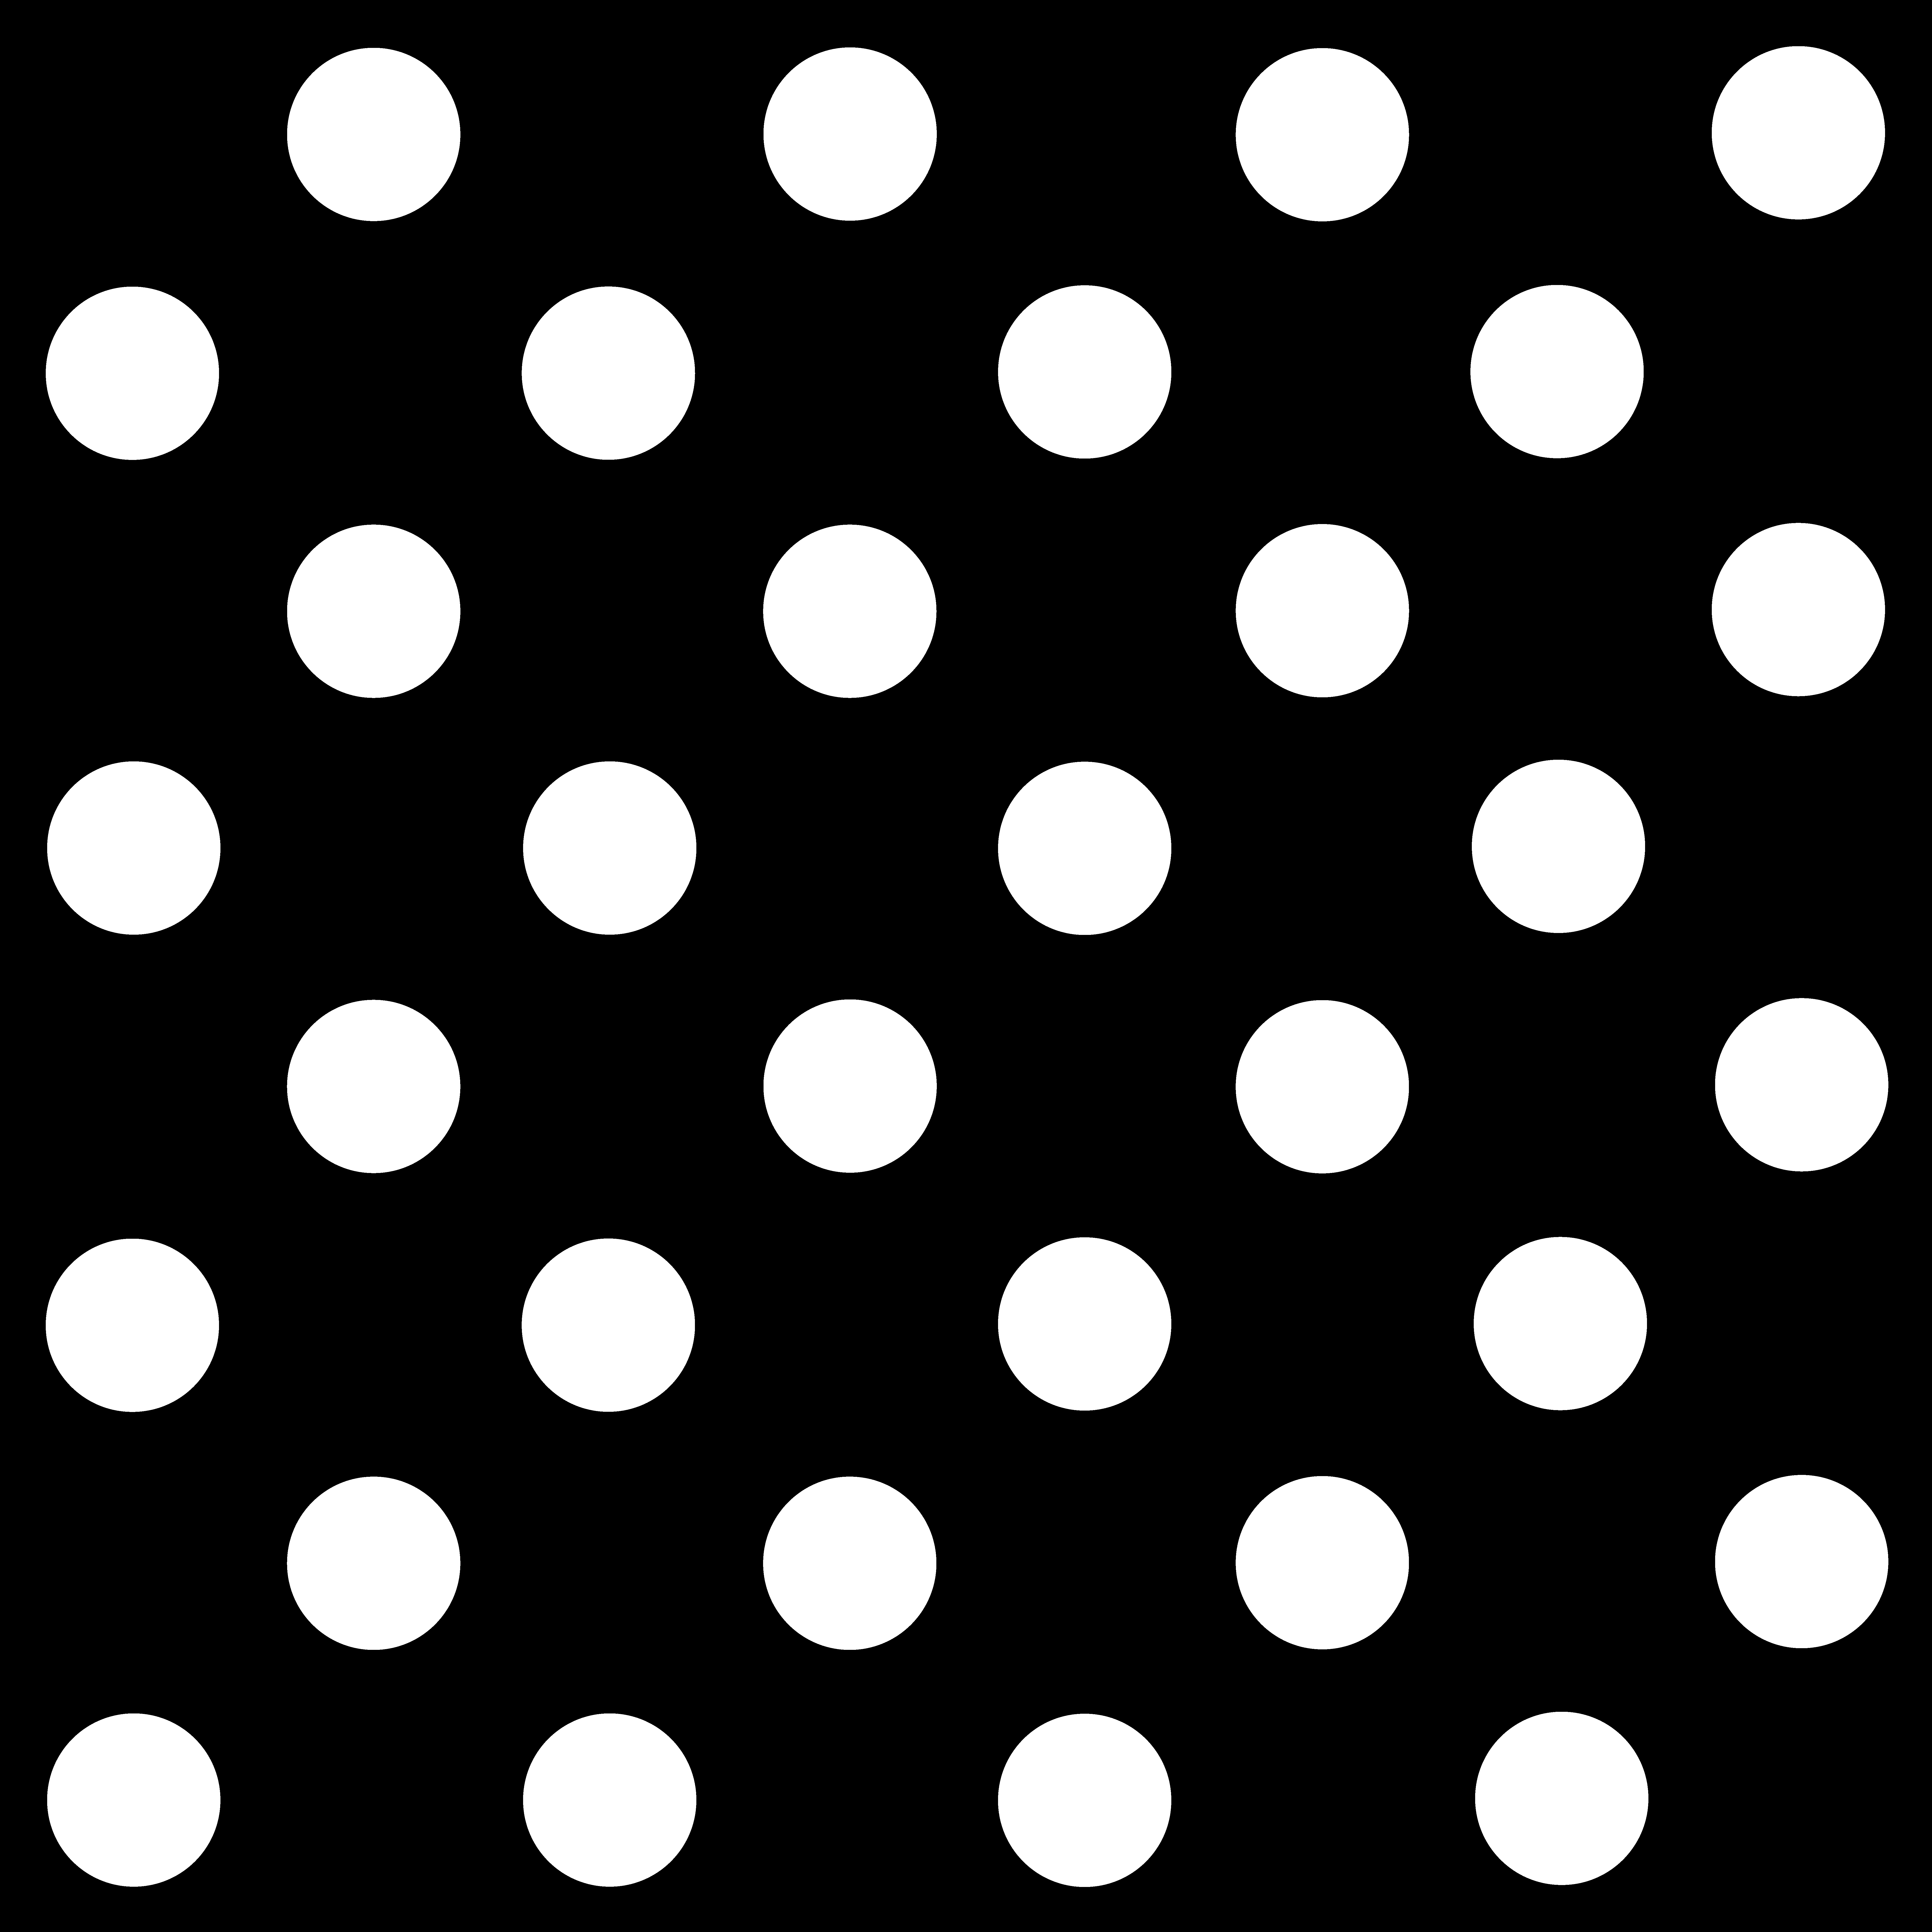 Black and white clipart backgrounds jpg royalty free White Polka Dots on Black Background - Free Clip Art jpg royalty free